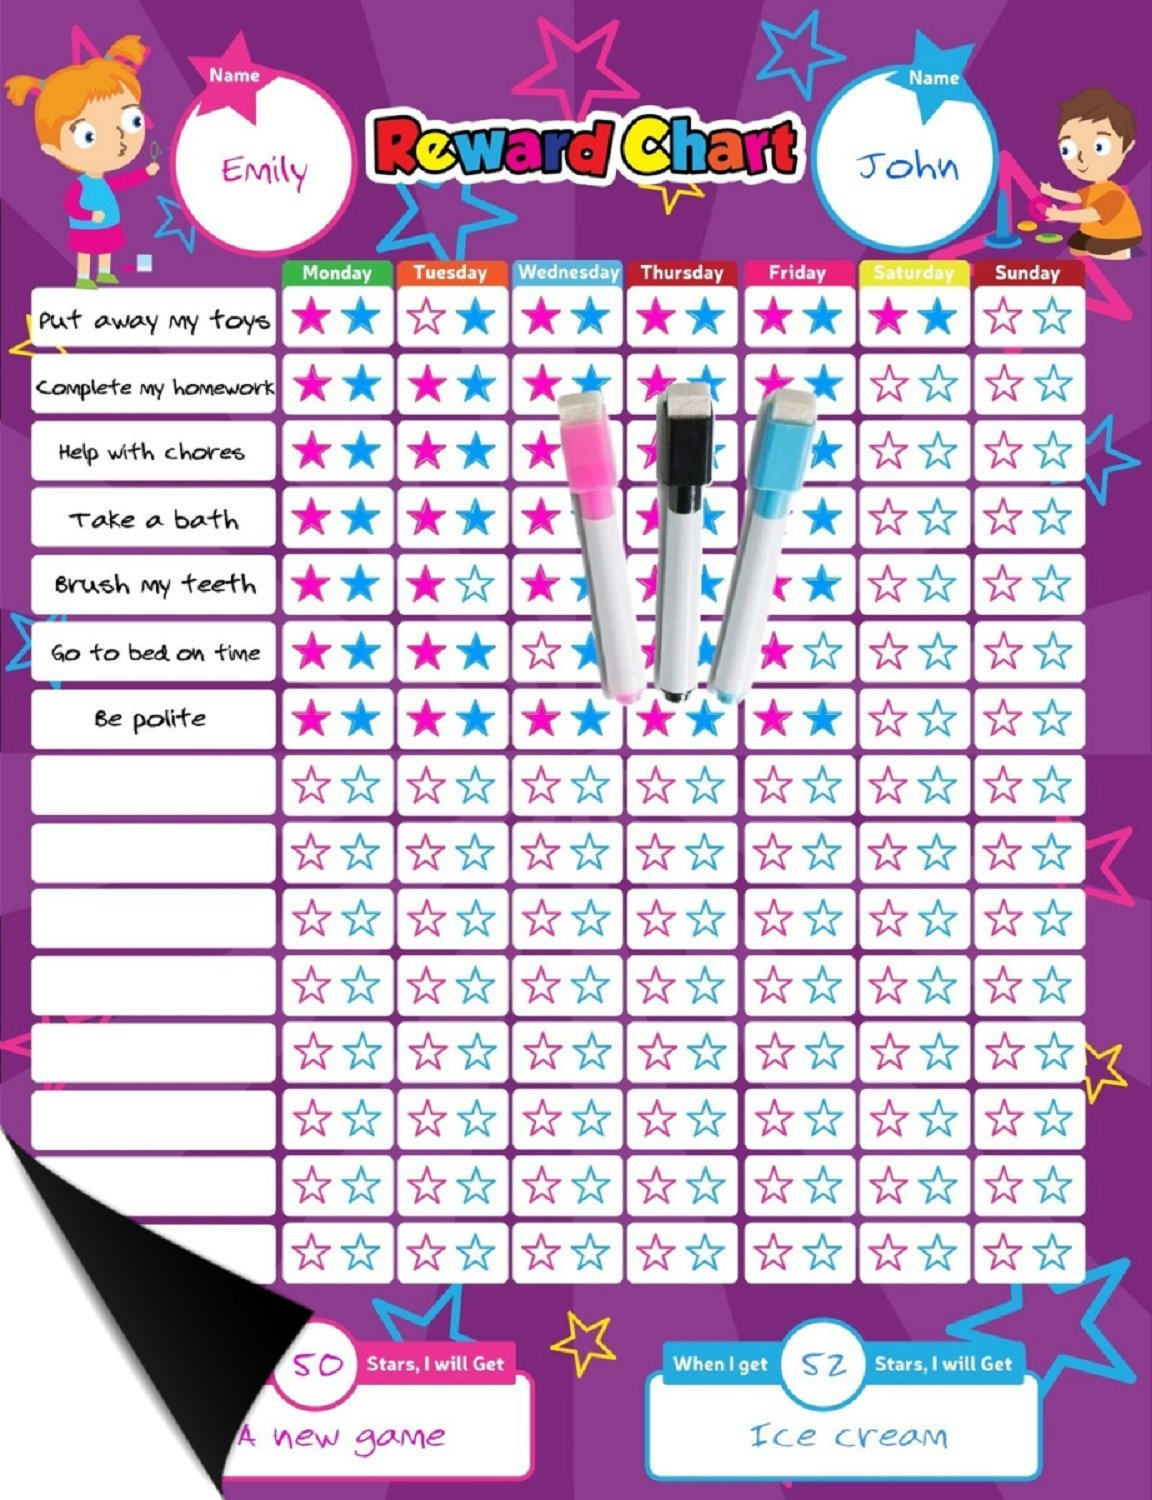 Magnetic Reward Behavior Star Chore Chart for One or Two Kids 17 x 13 Includes: 3 Color Dry Erase Markers Pink, Blue, & Black, Flexible Chart with Full Magnet Backing for Fridge Teaches Responsibility